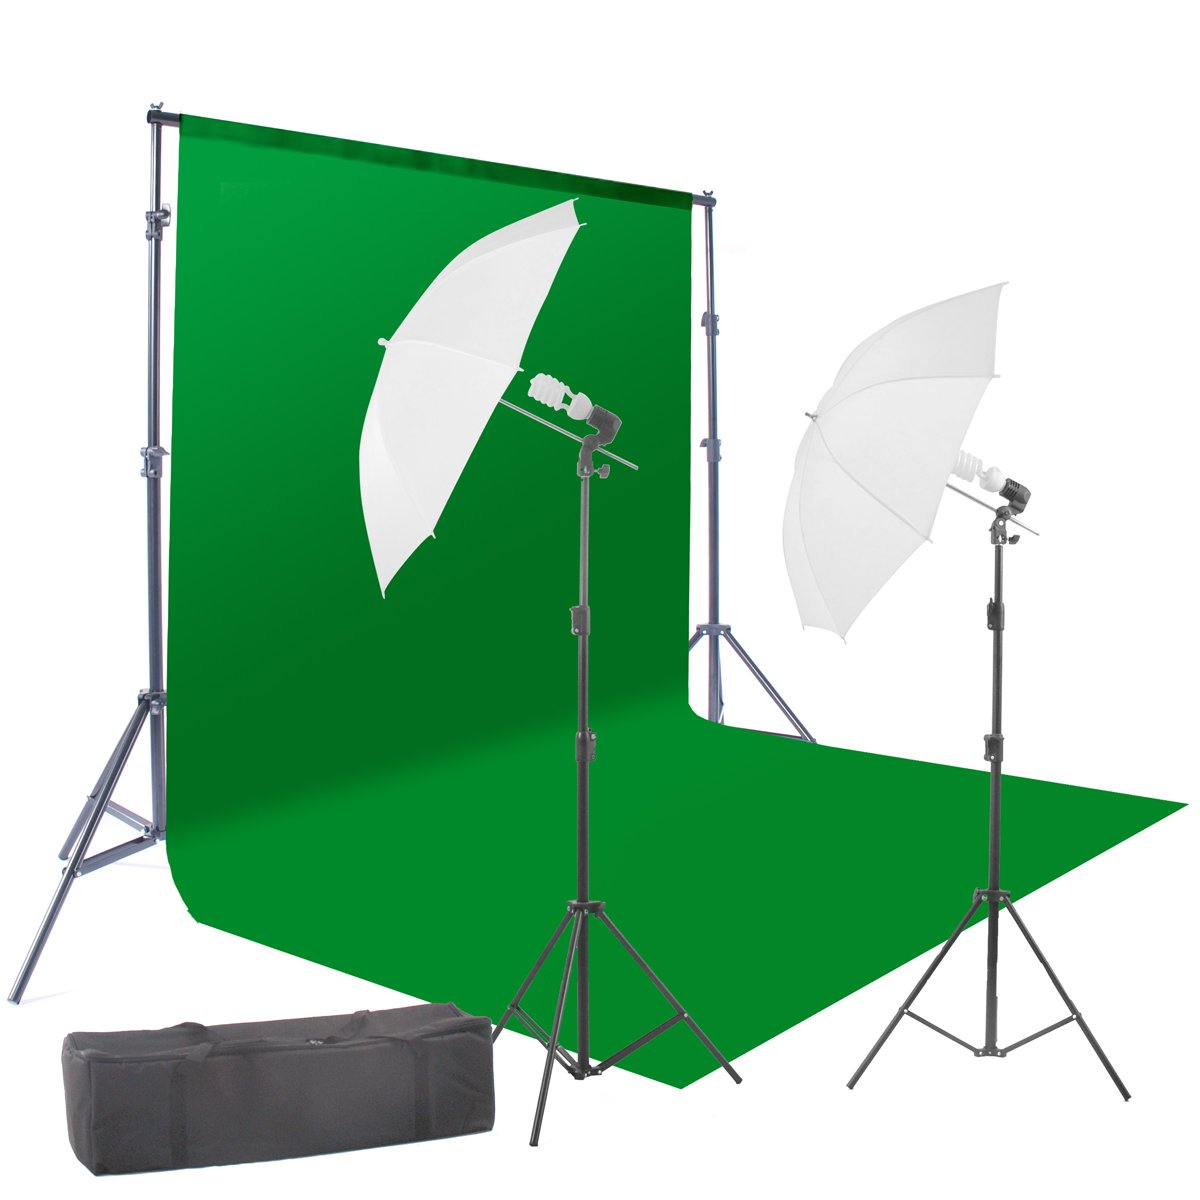 StudioFX 400W Chromakey Green Screen 6ft x 9ft Backdrop Photography Video Lighting Kit - Background Support System Included - by Kaezi CH69G by StudioFX